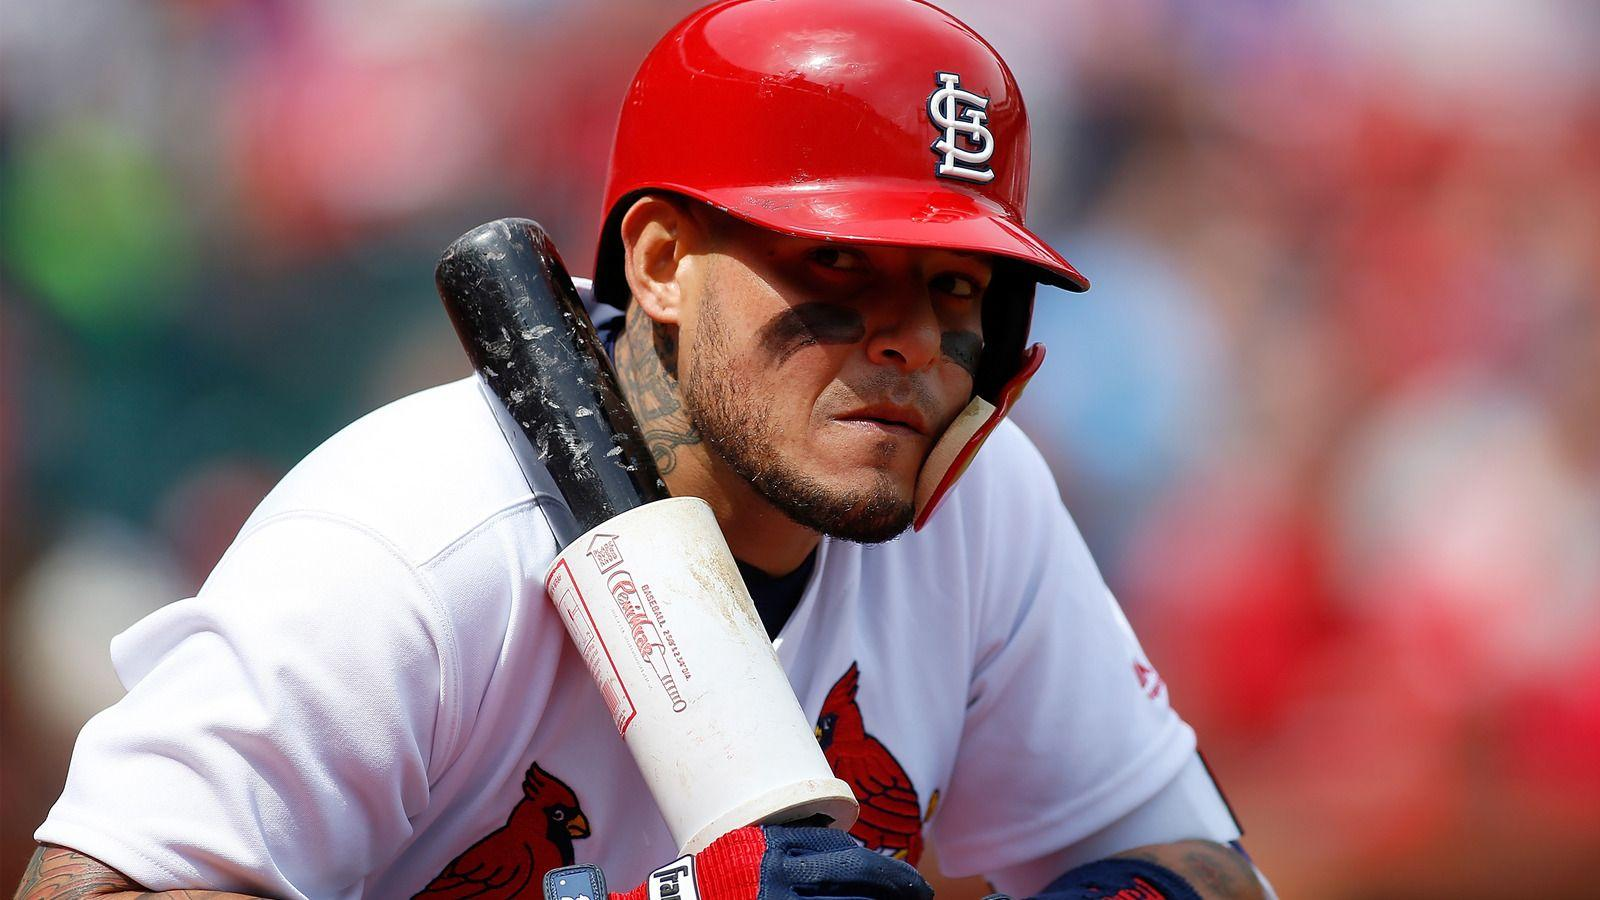 Yadier Molina takes offense to pine tar questions